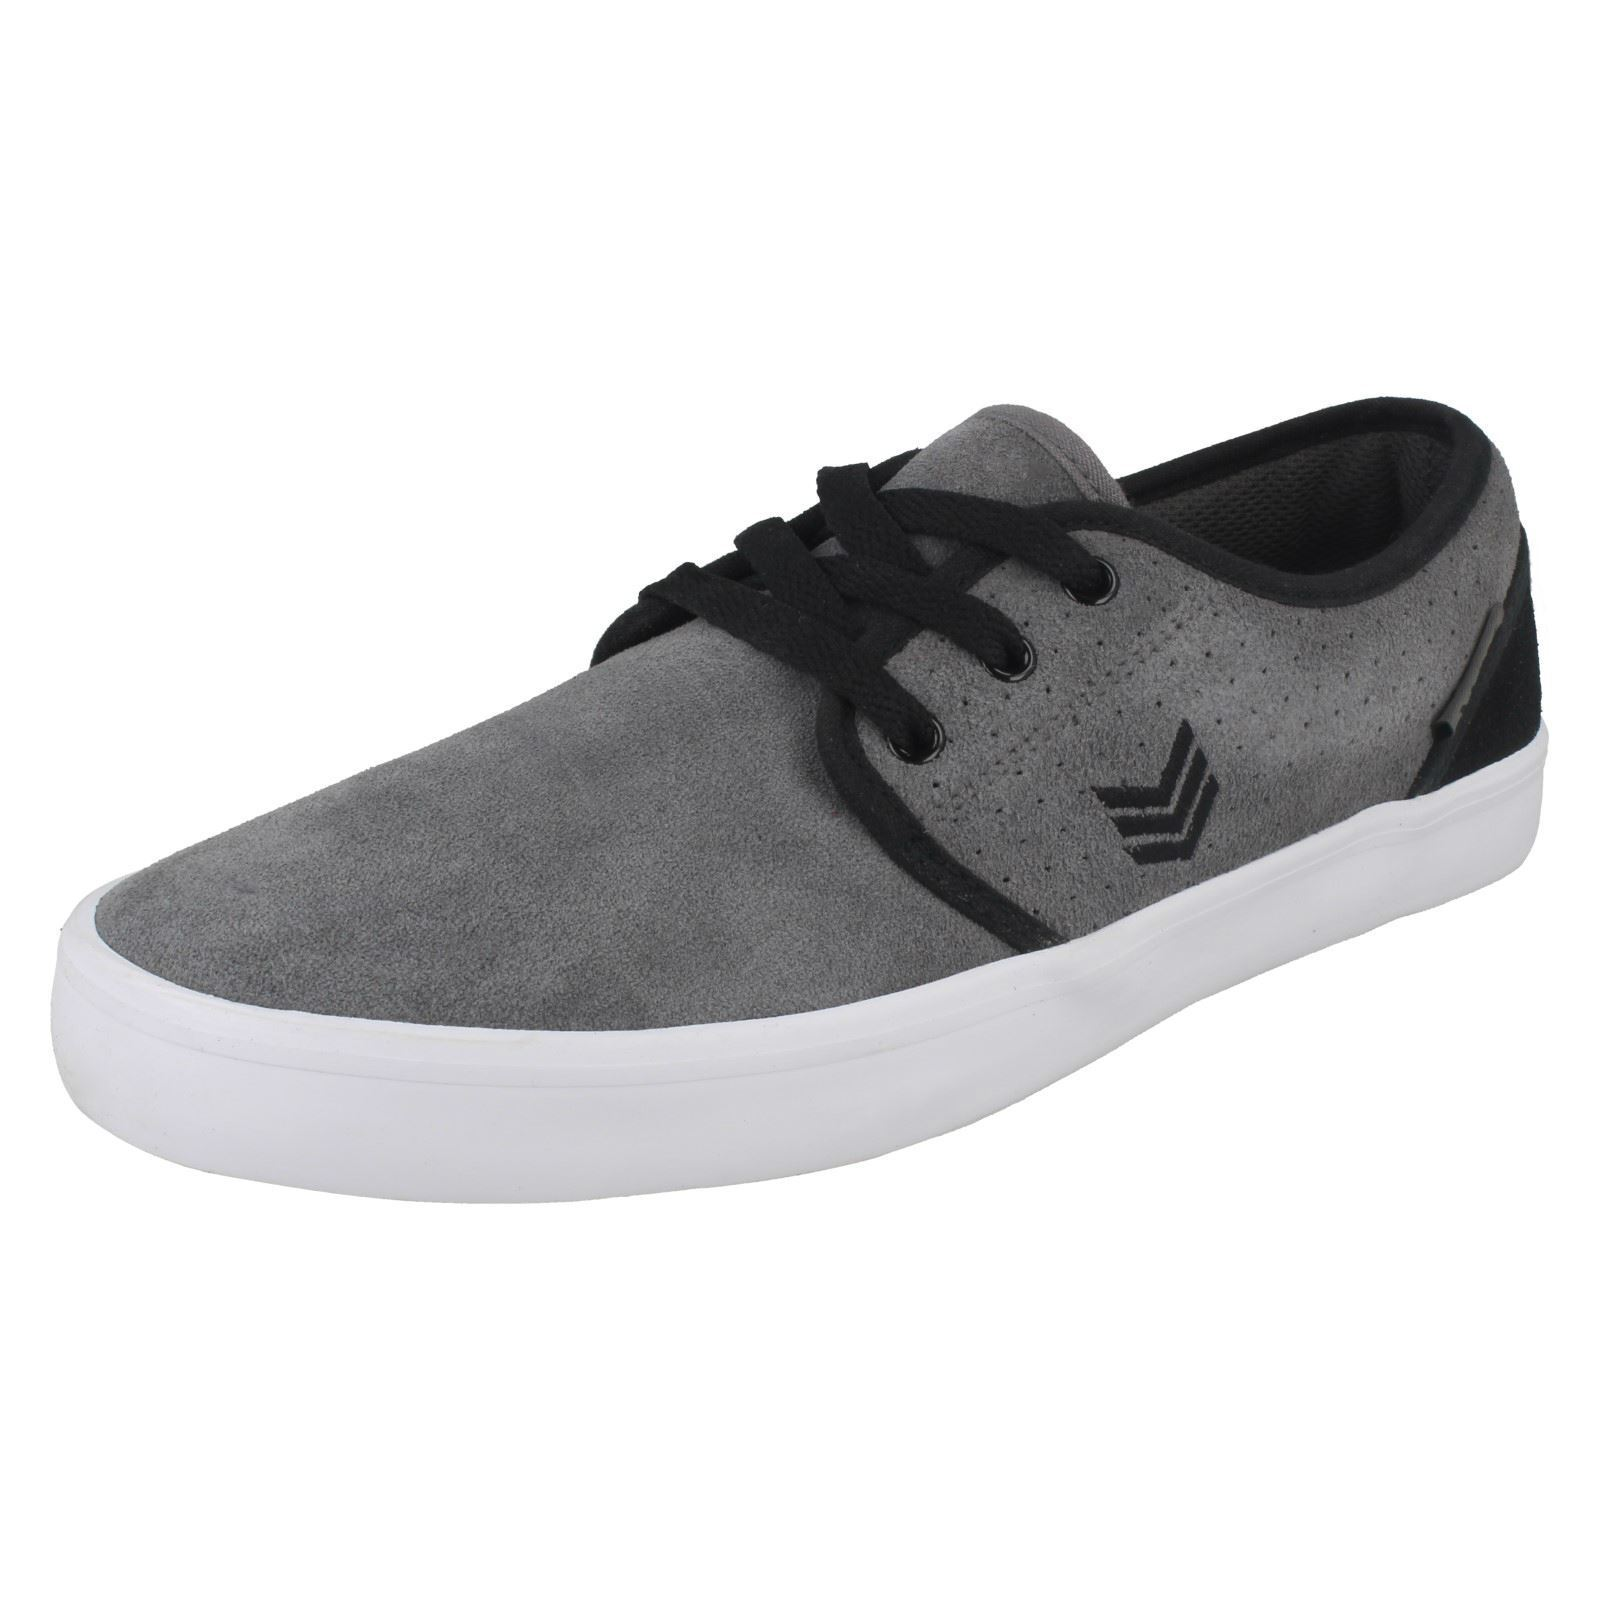 Vox Footwear Inc Mens Casual shoes - Slacker